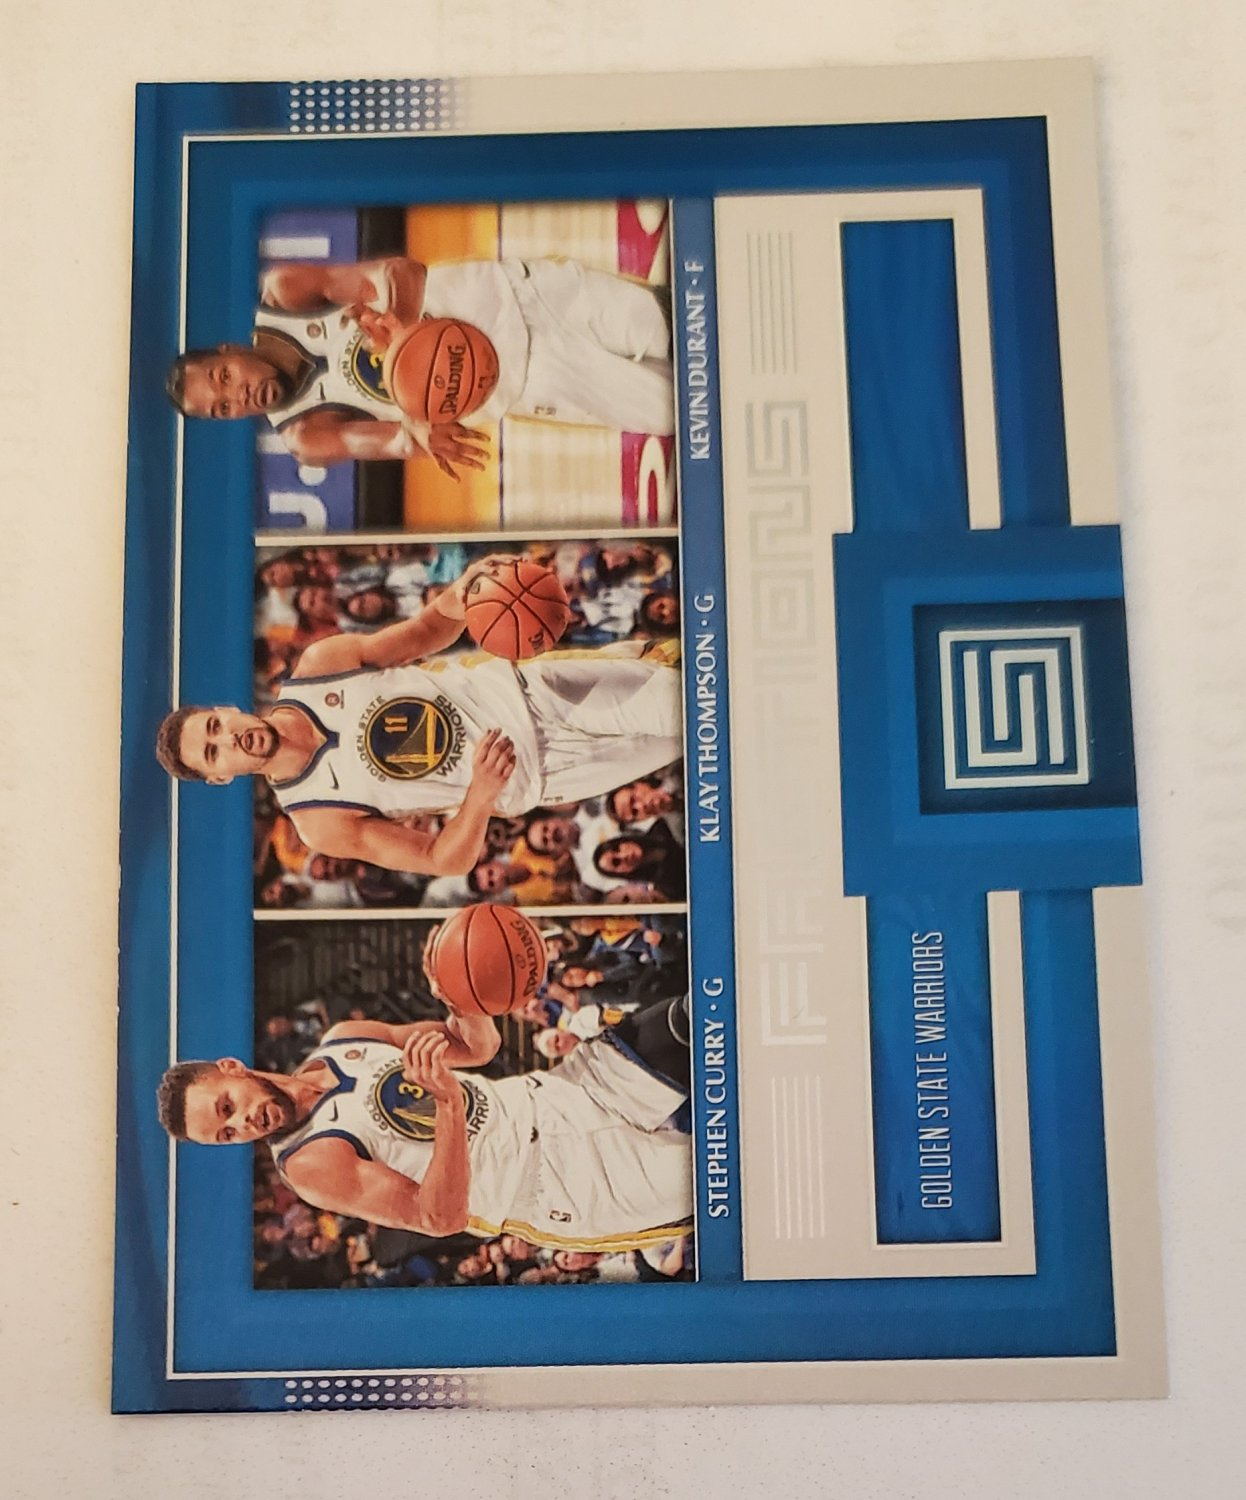 Stephen Curry, Klay Thompson, & Kevin Durant 20117-18 Panini Status Factions Insert Card